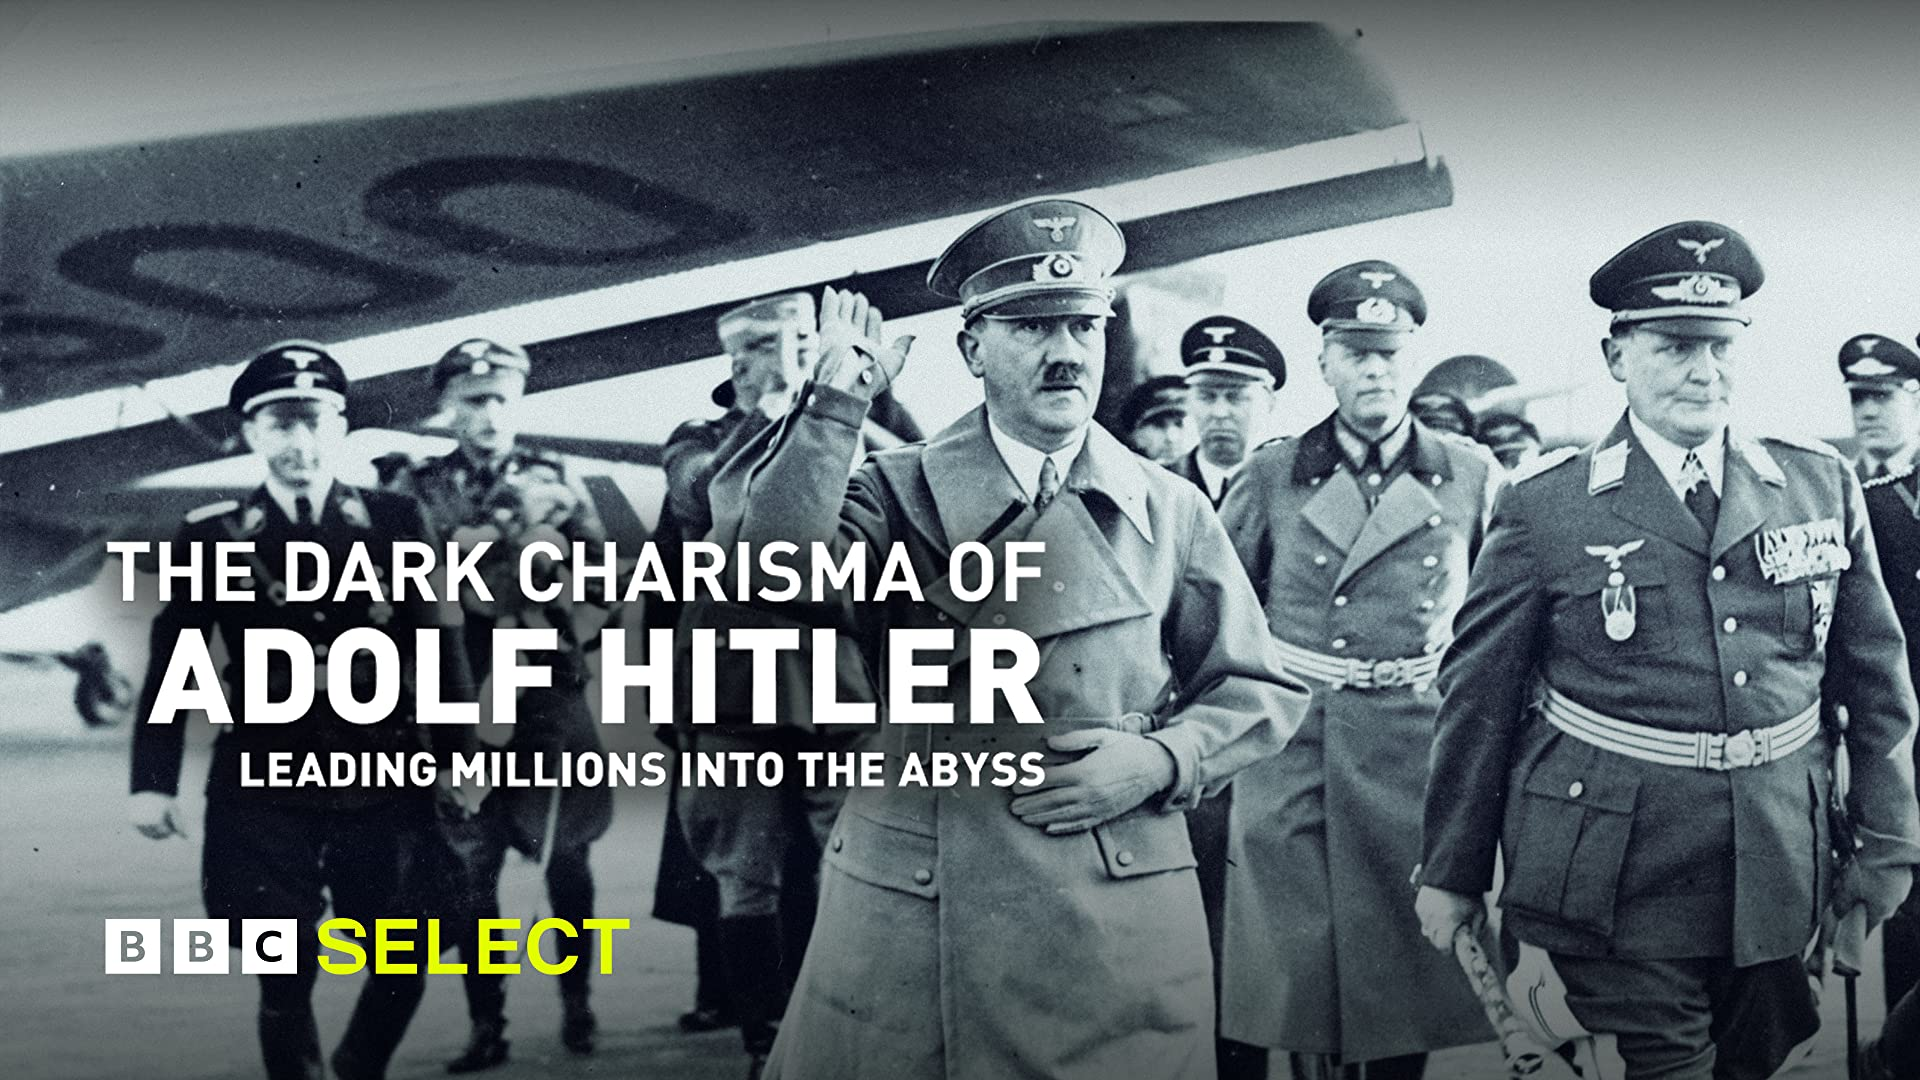 The Dark Charisma of Adolf Hitler: Leading Millions into the Abyss